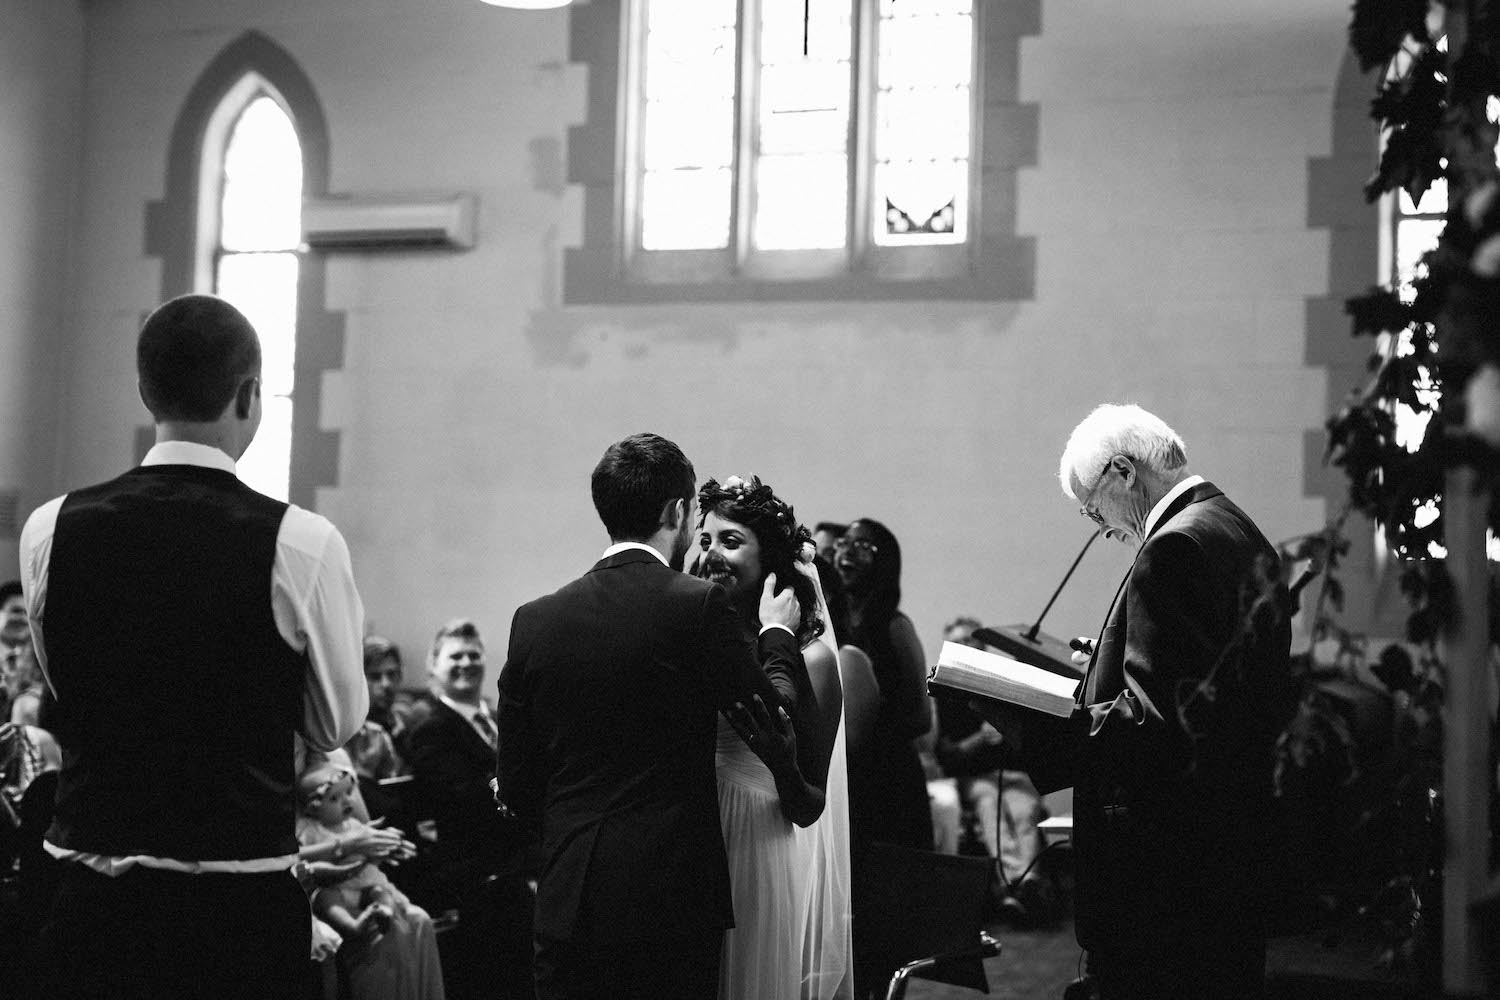 The bride & groom moments after their first kiss at St Matthew's Anglican Church, Subiaco.